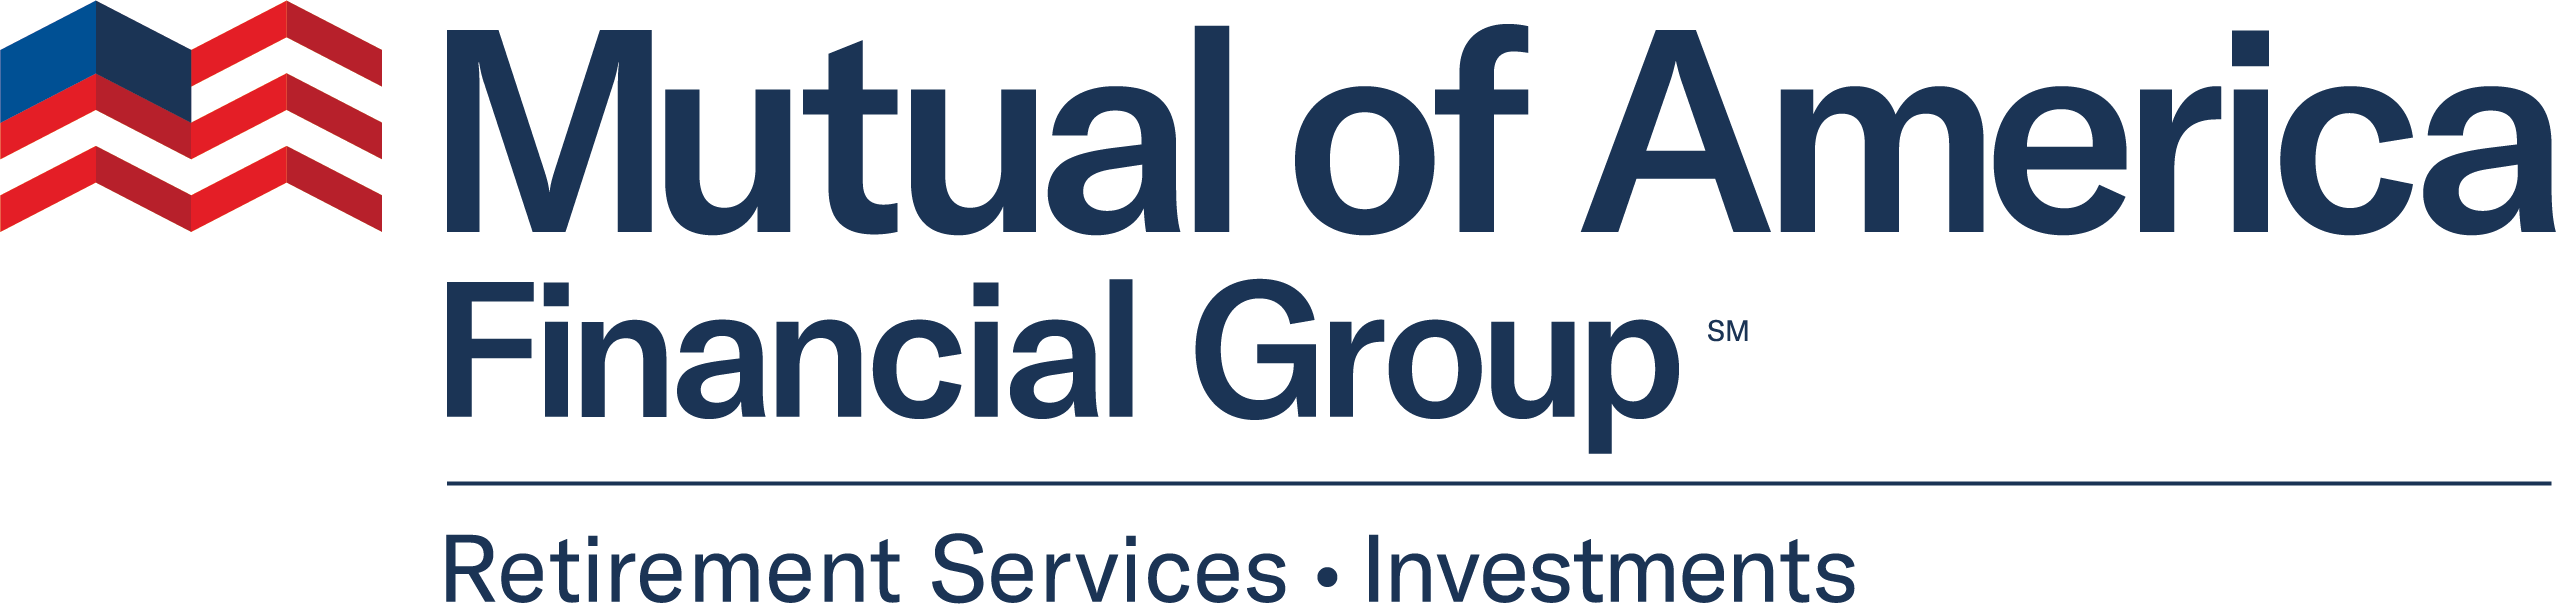 Mutual of America Financial Group. Retirement Services. Investments.